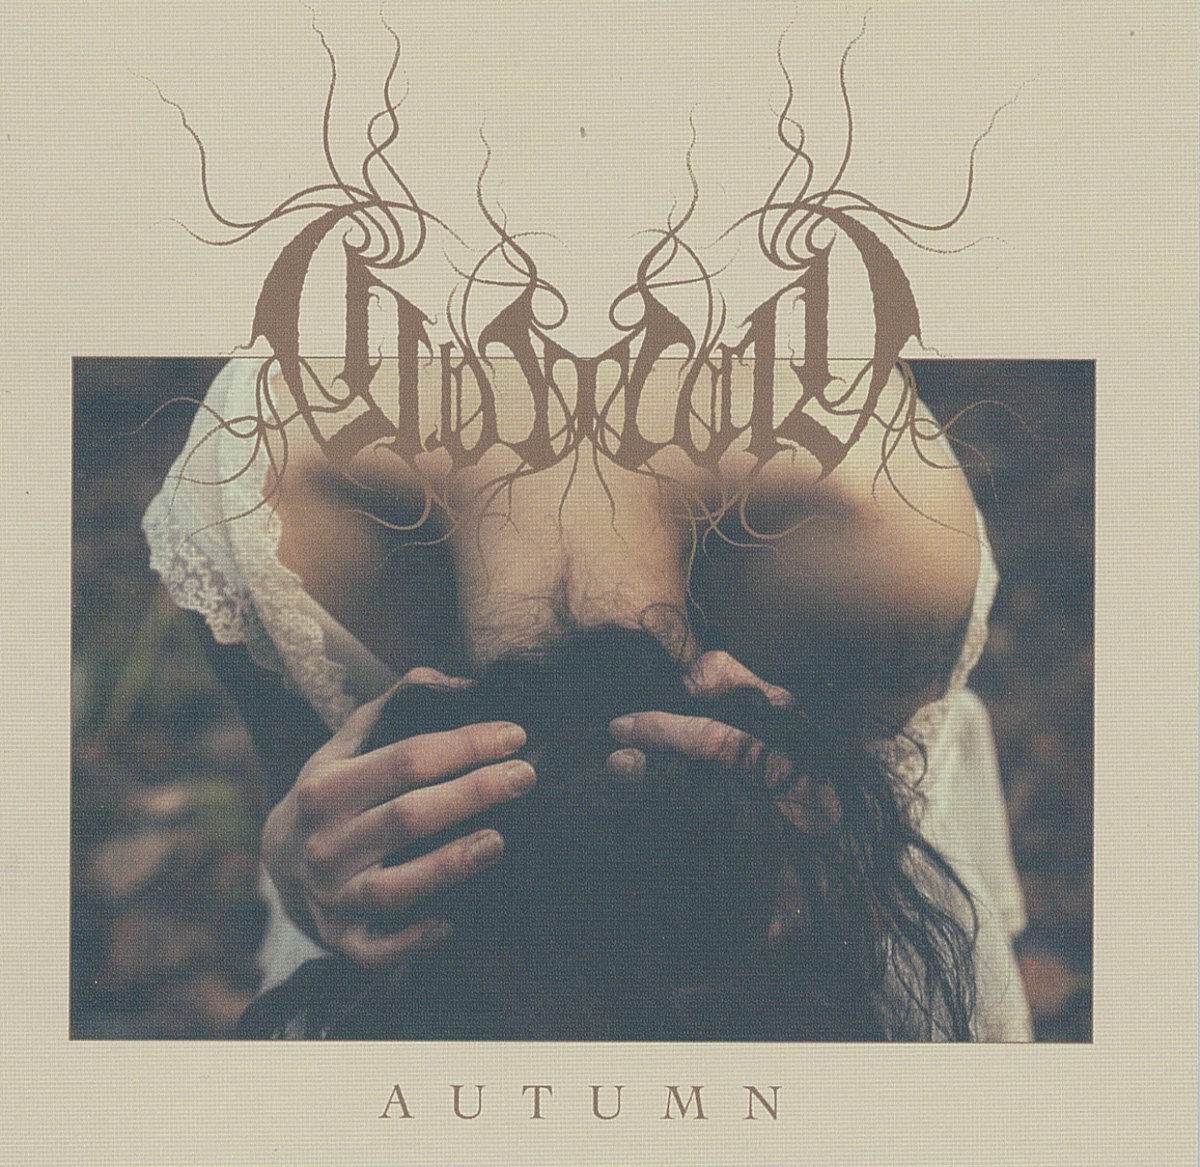 COLDWORLD - Autumn